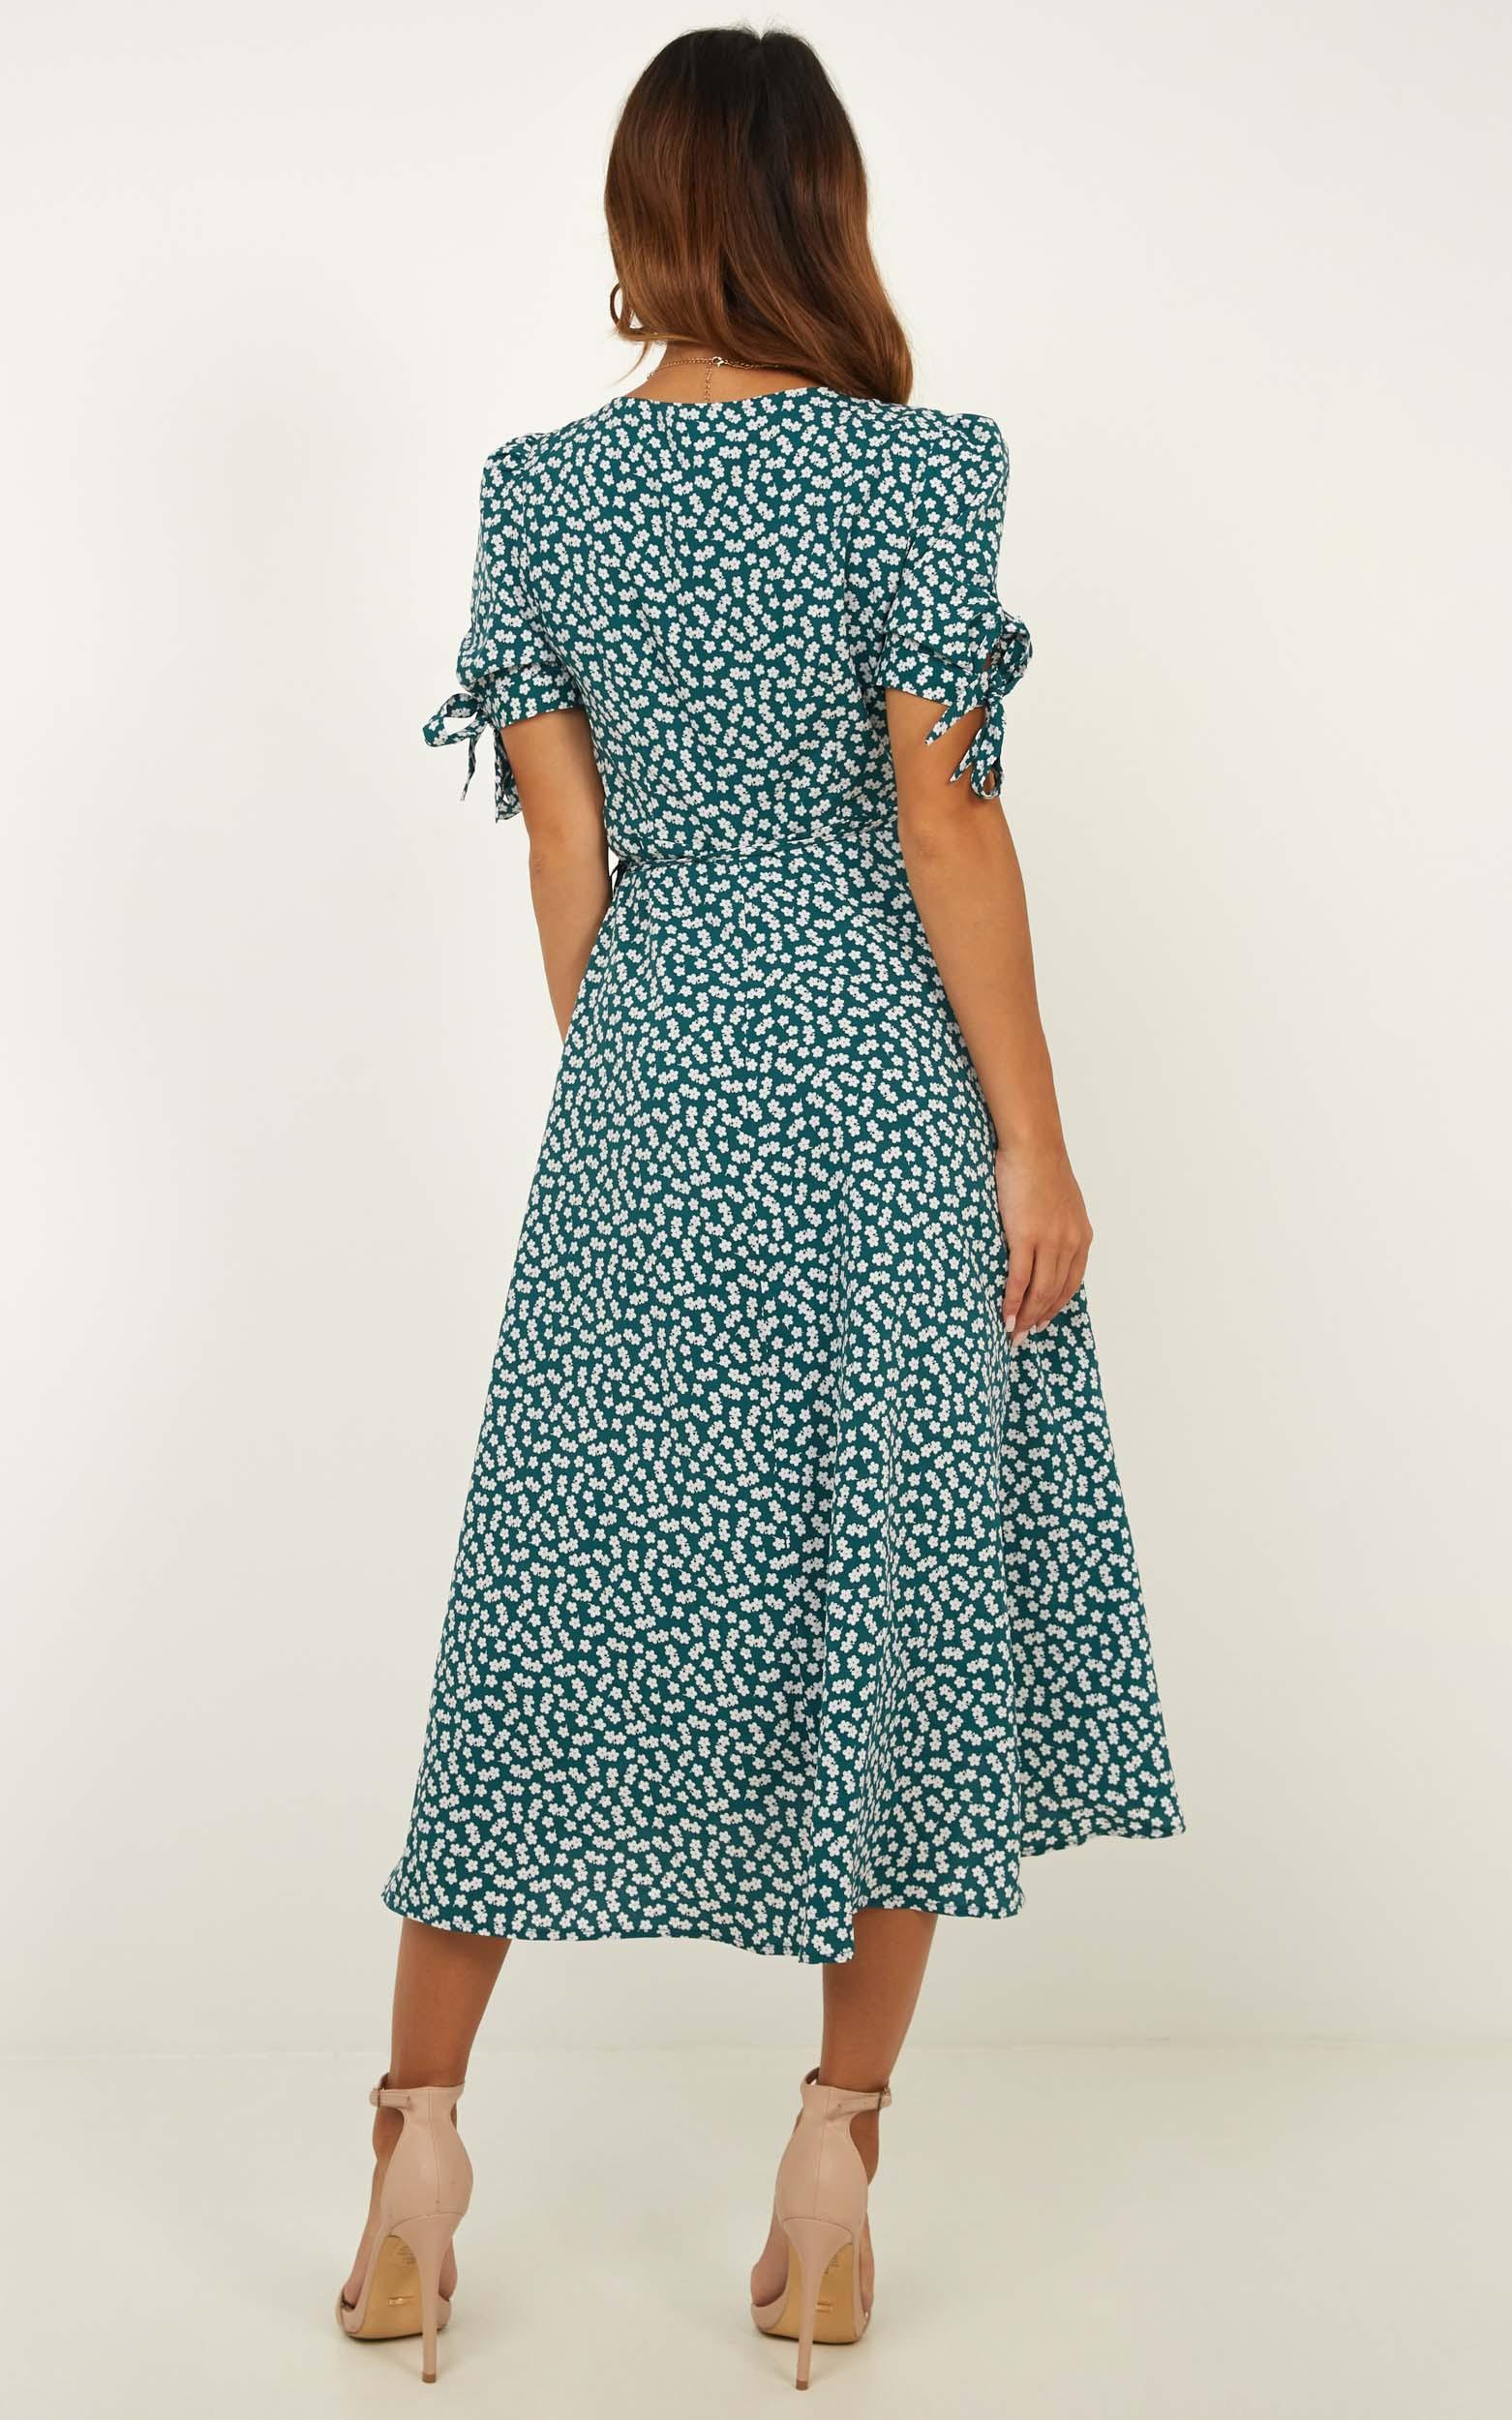 Dont Dream Its Over Dress In Emerald Floral - 4 (XXS), Green, hi-res image number null